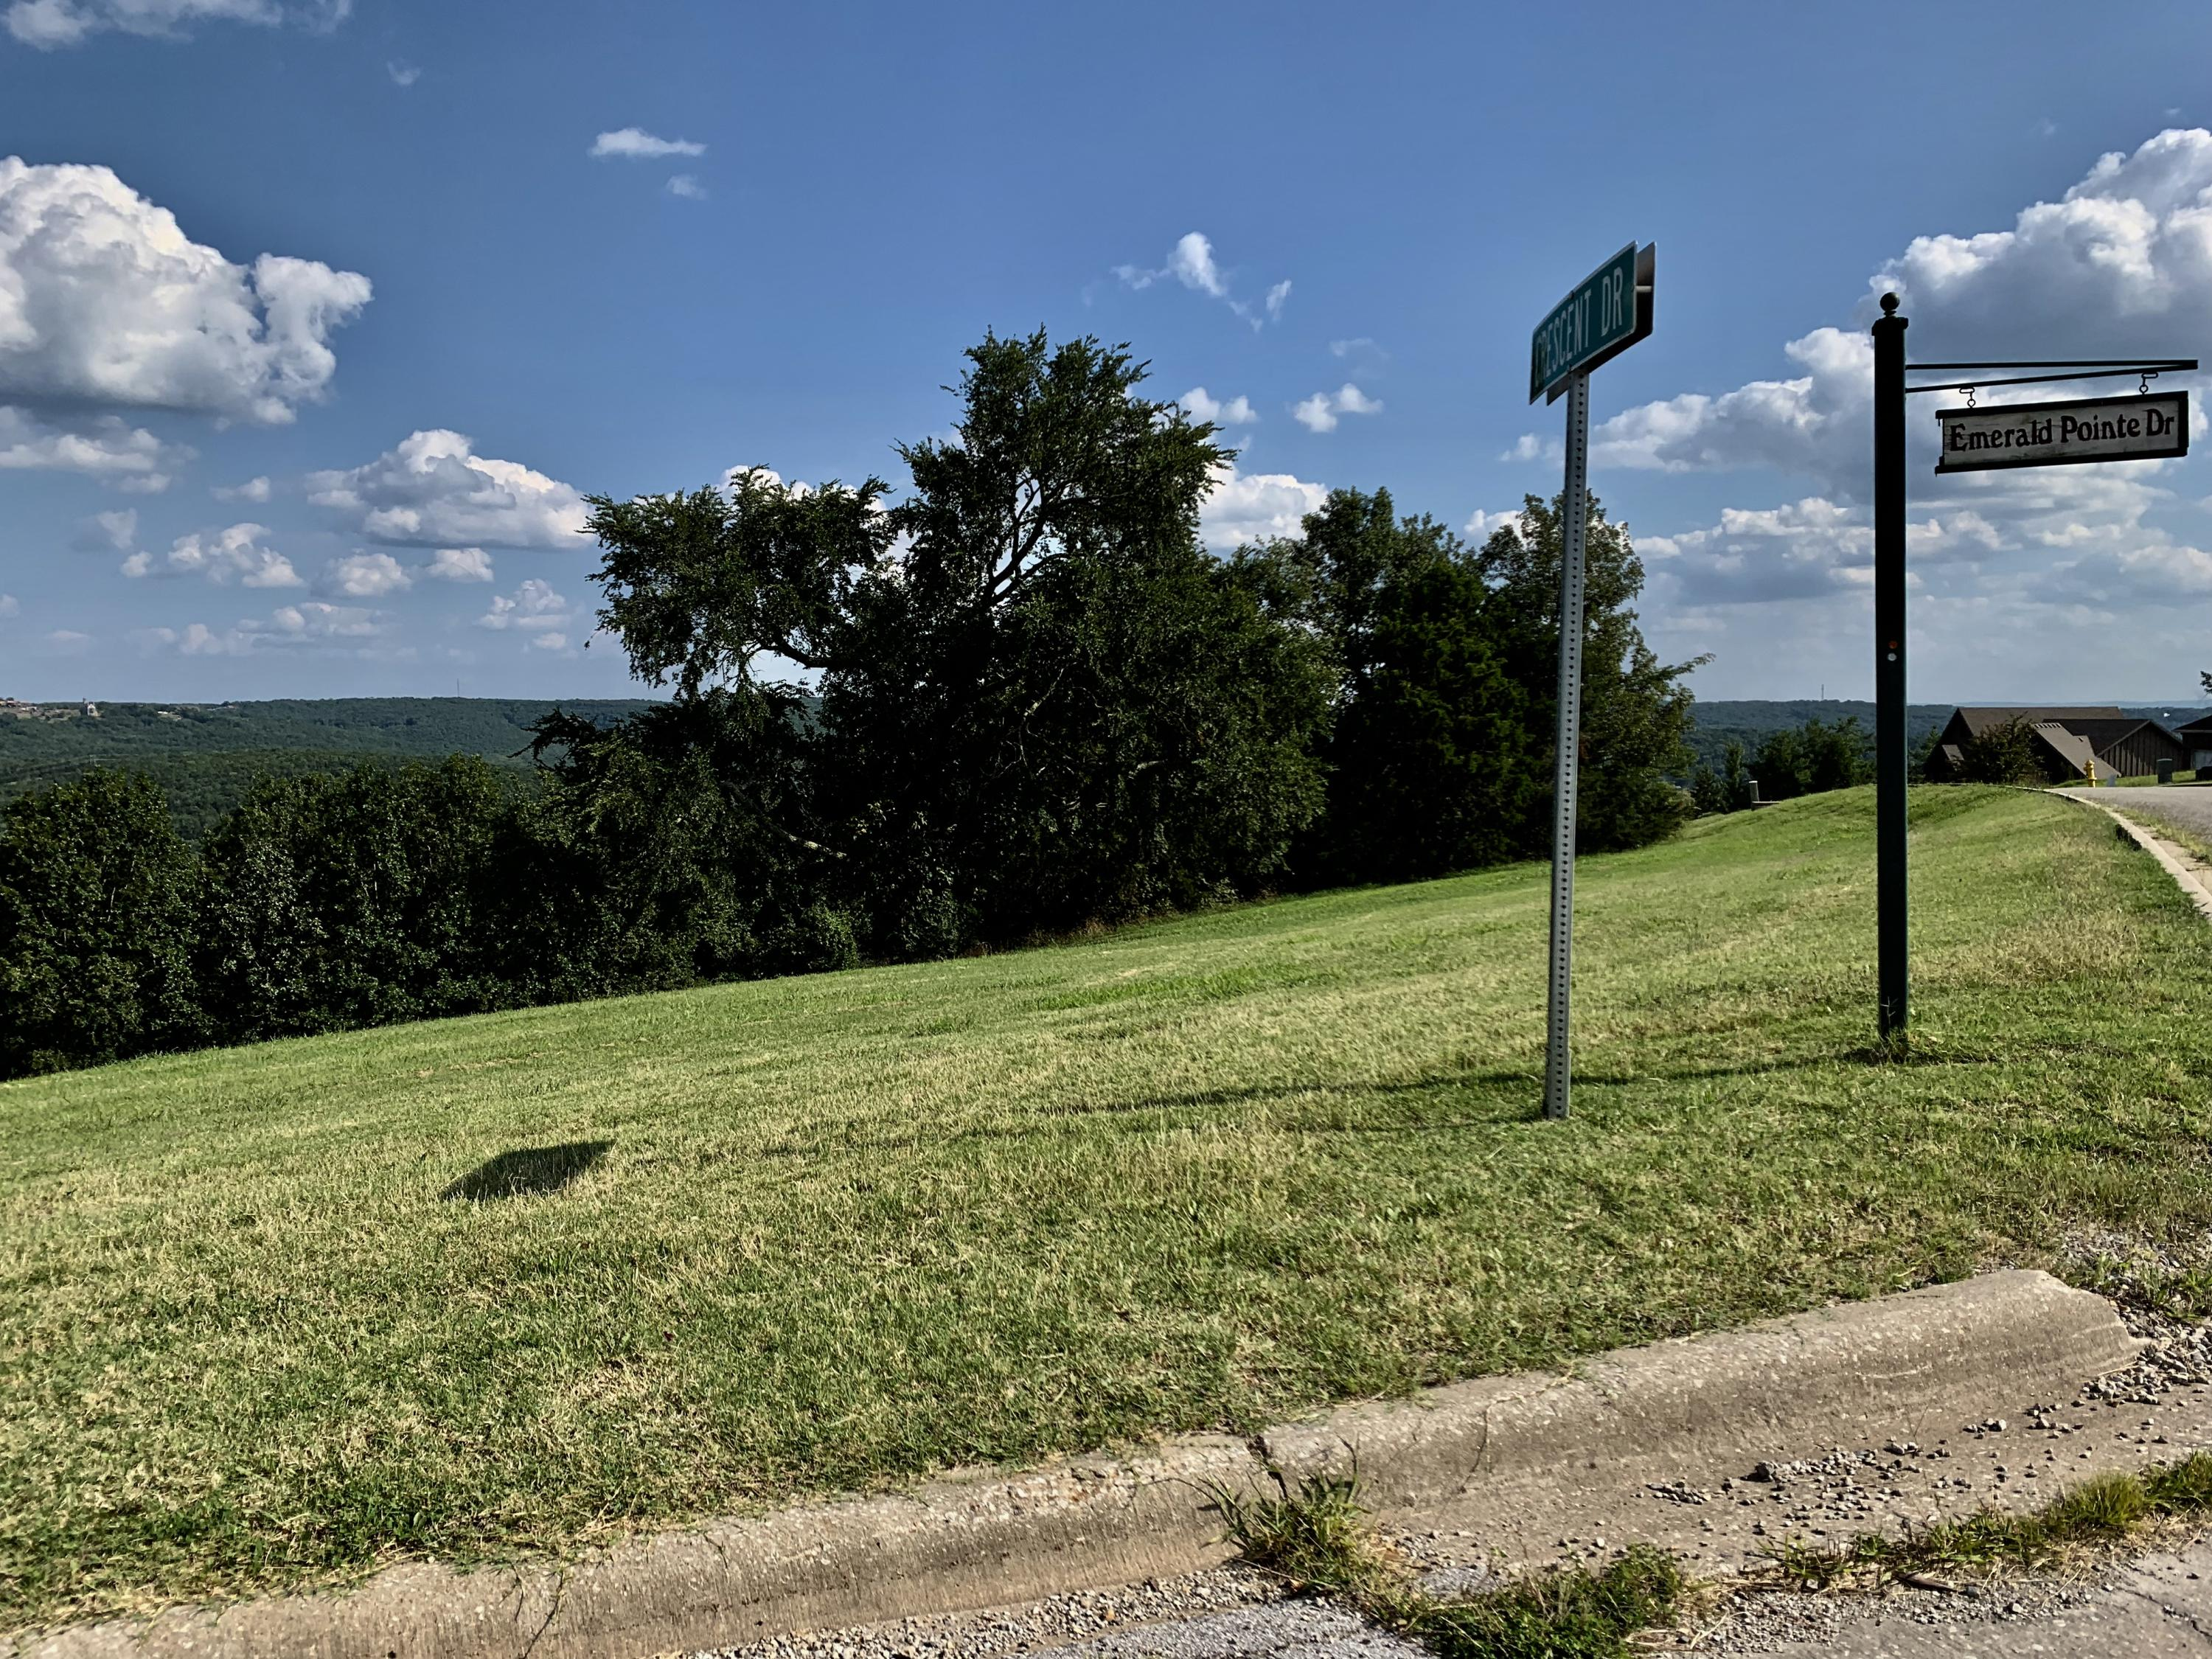 Lot 243 Emerald Pointe Drive Hollister, MO 65672